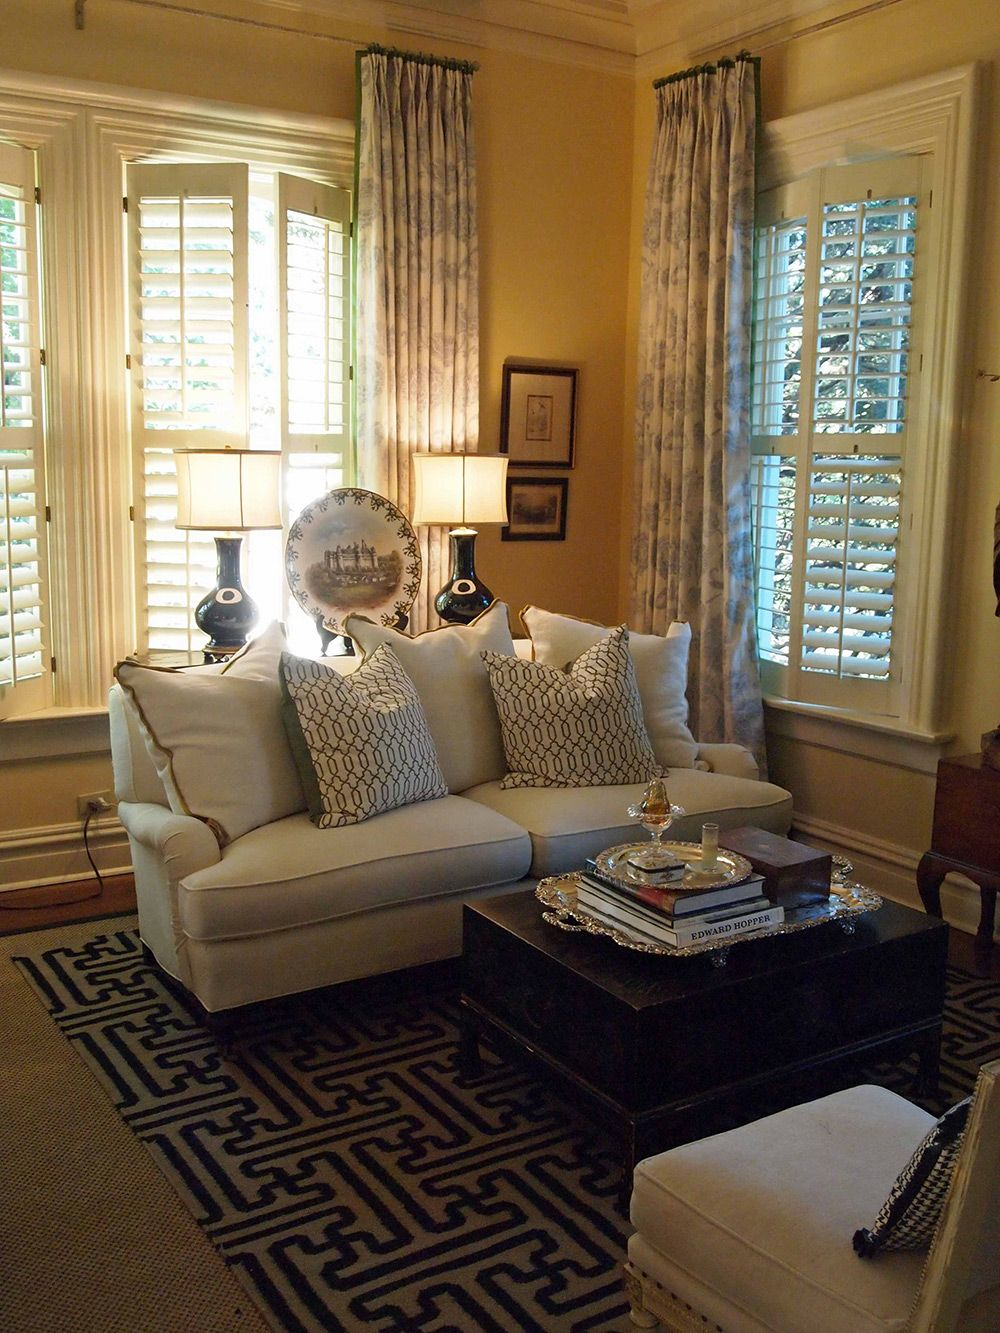 Fabric Makes the Window Treatments Home, Home decor